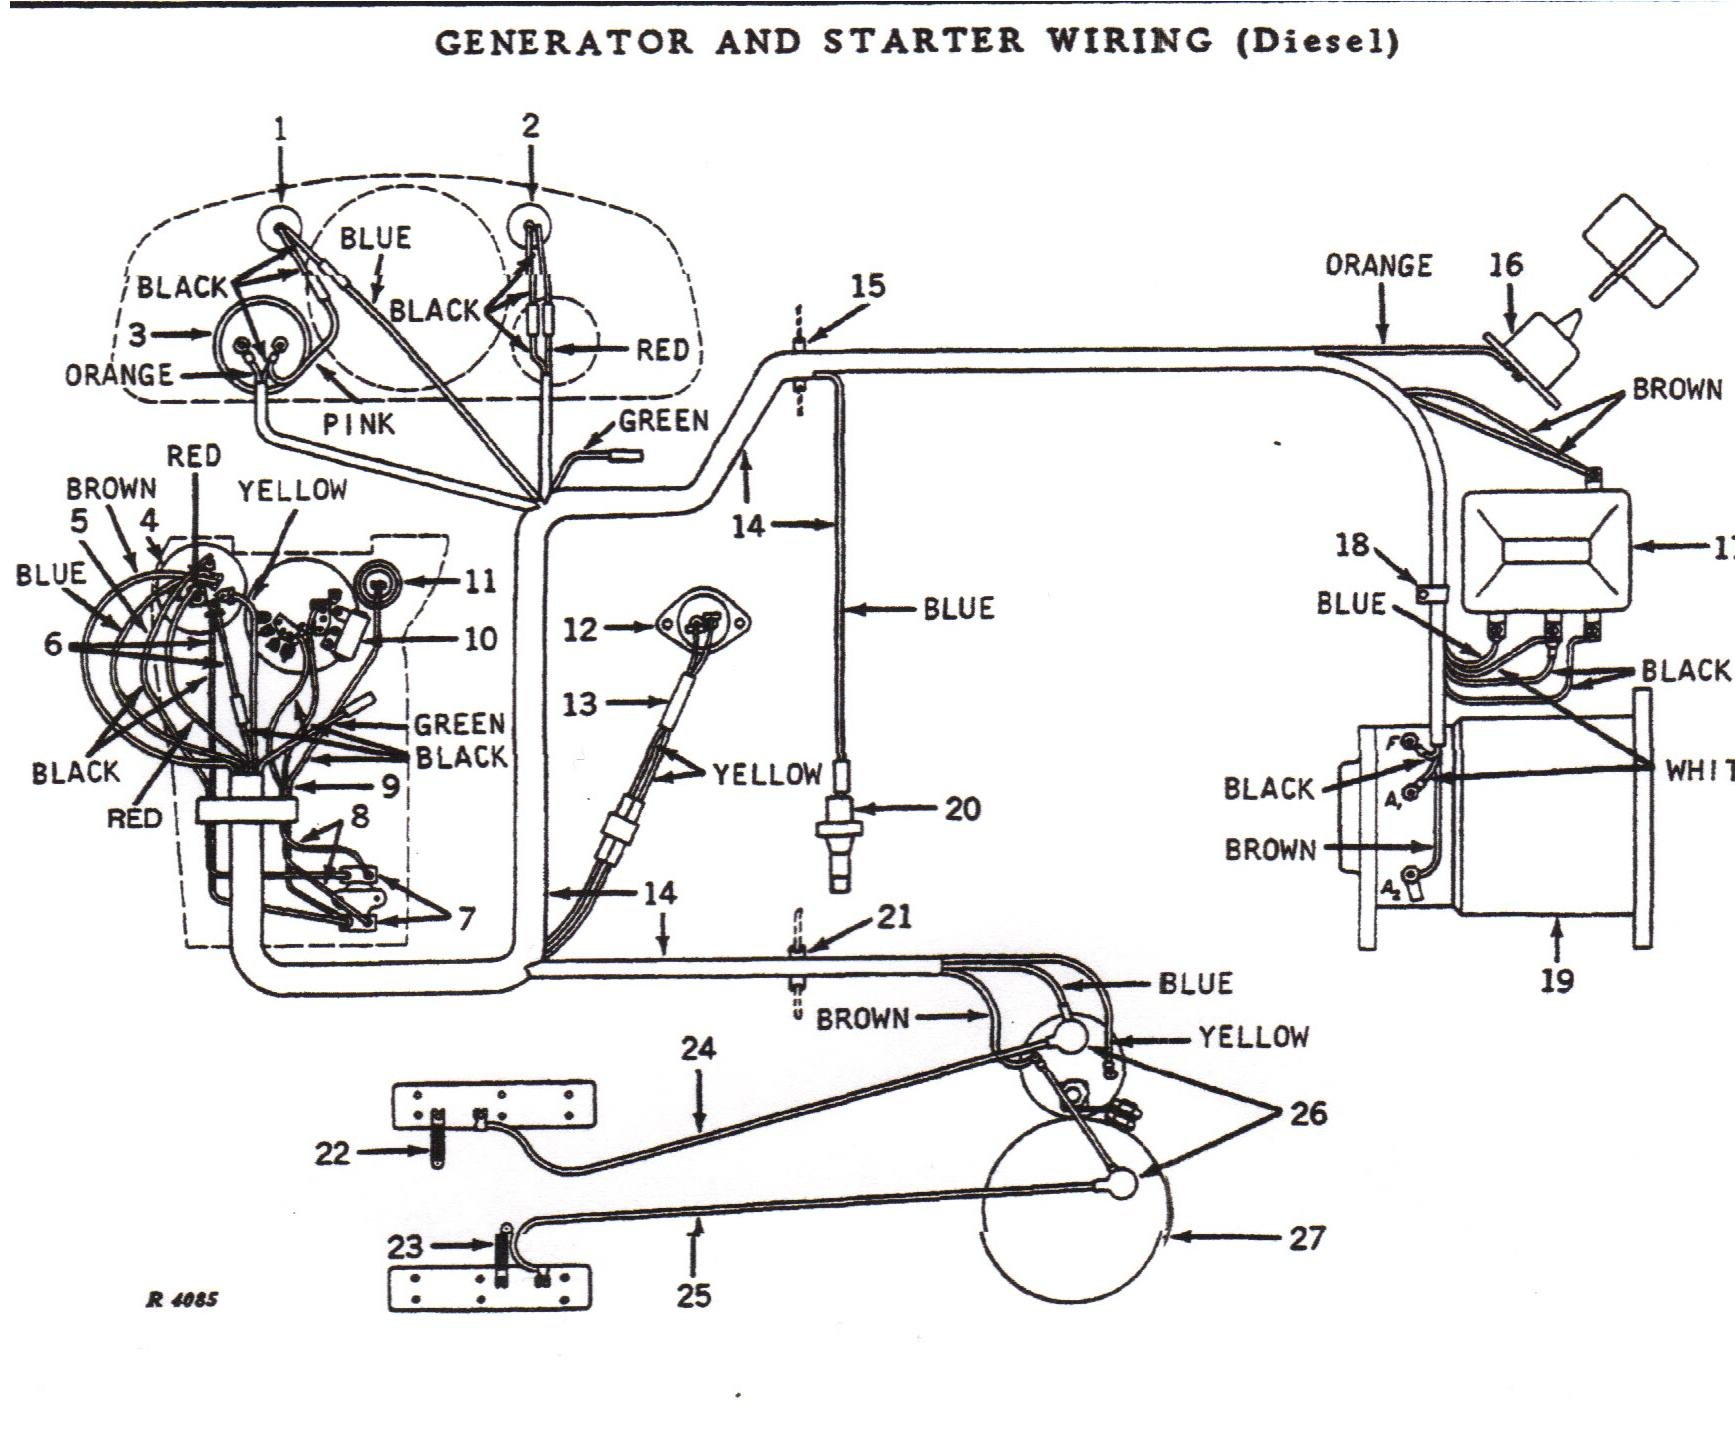 in search of a wiring diagram for the injector pump for a